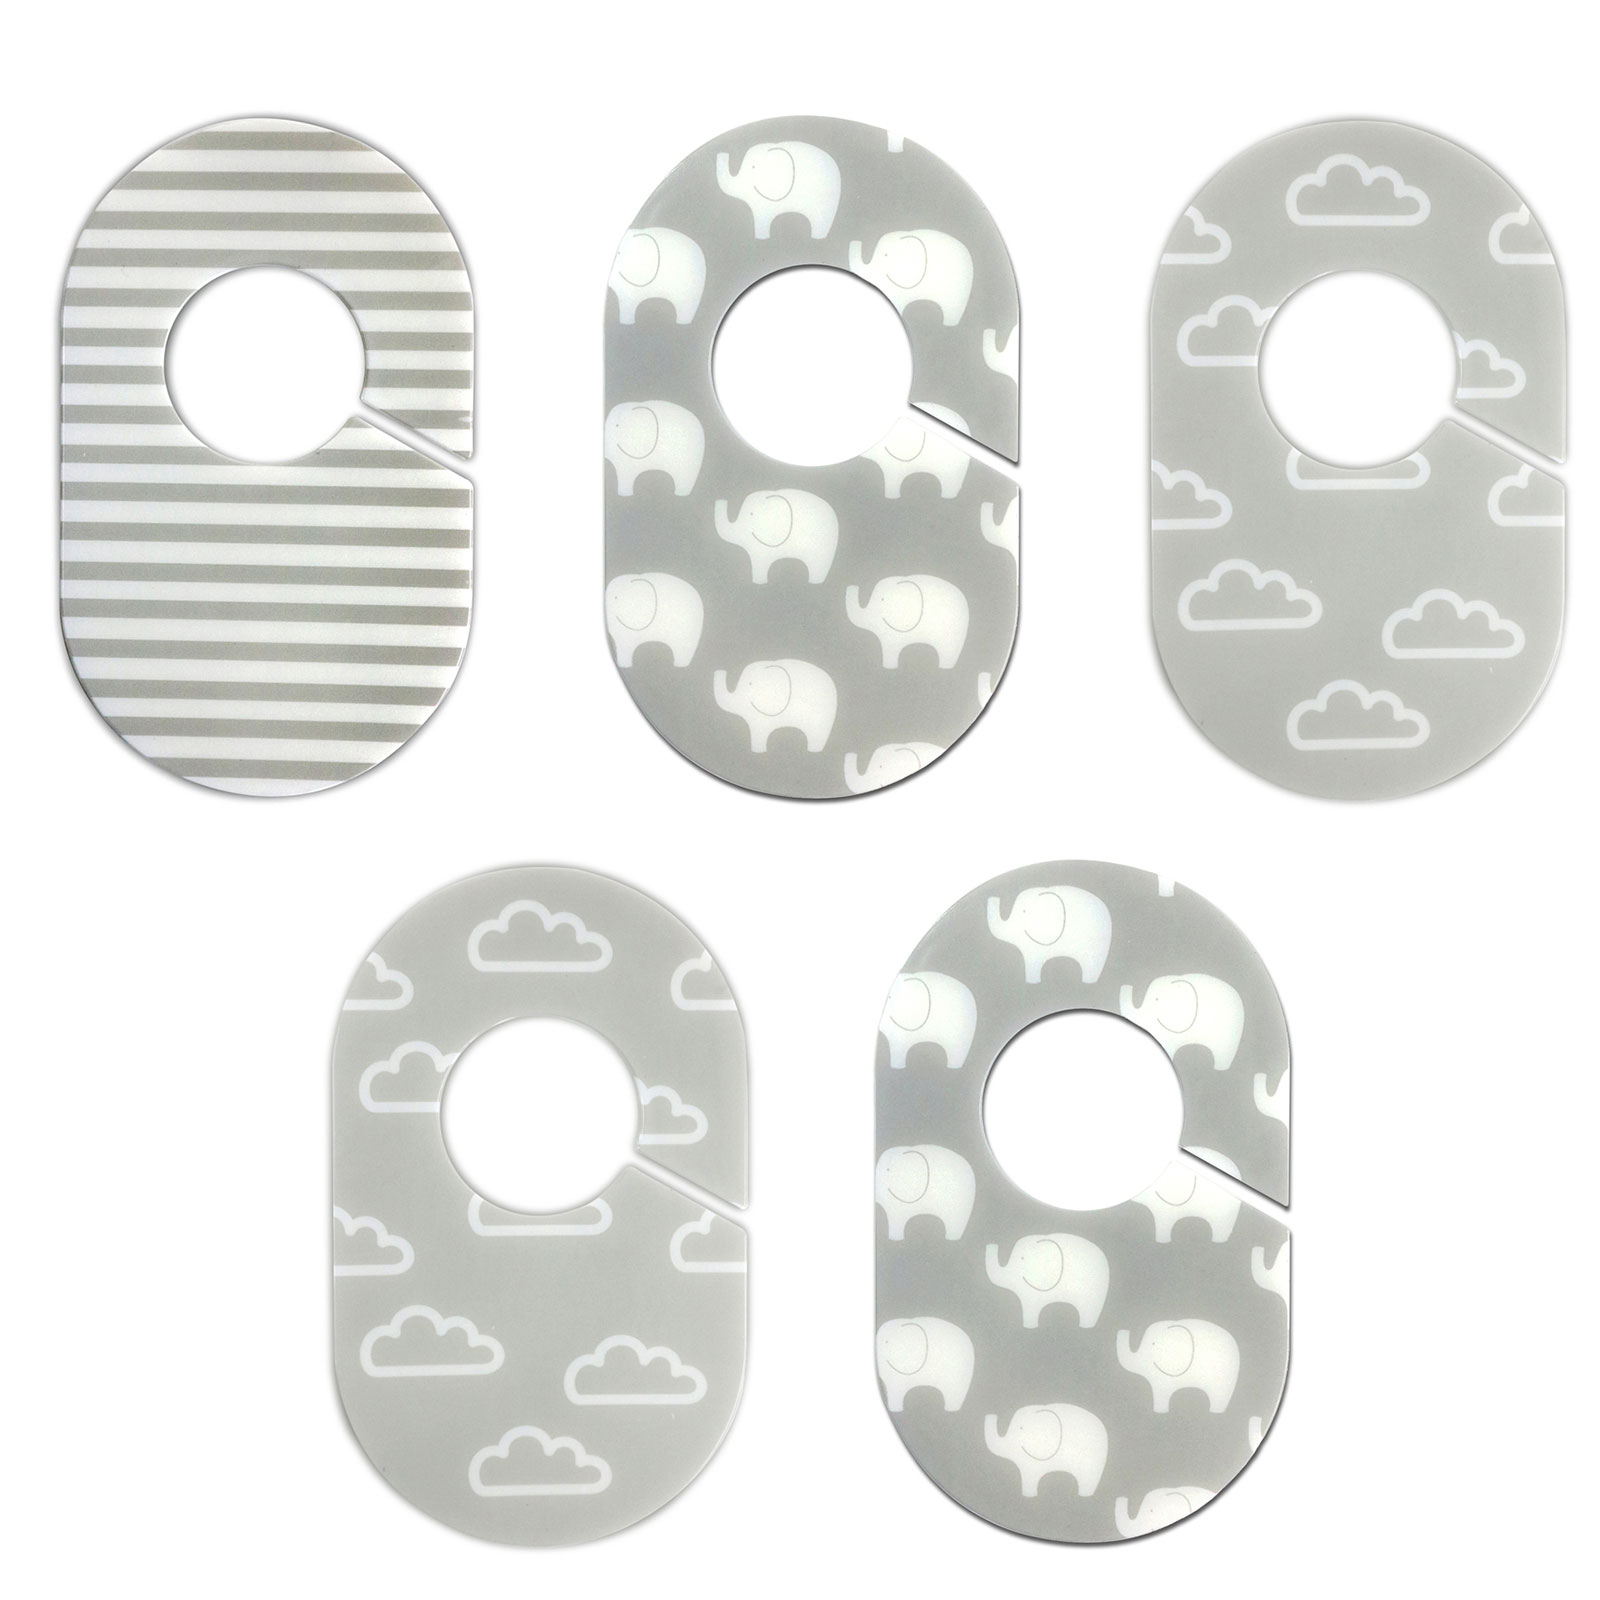 Little Haven Nursery Closet Organizers Dividers - Gray and White Elephant and Cloud Designs - Set of 5 Plastic Baby Closet Rod Dividers